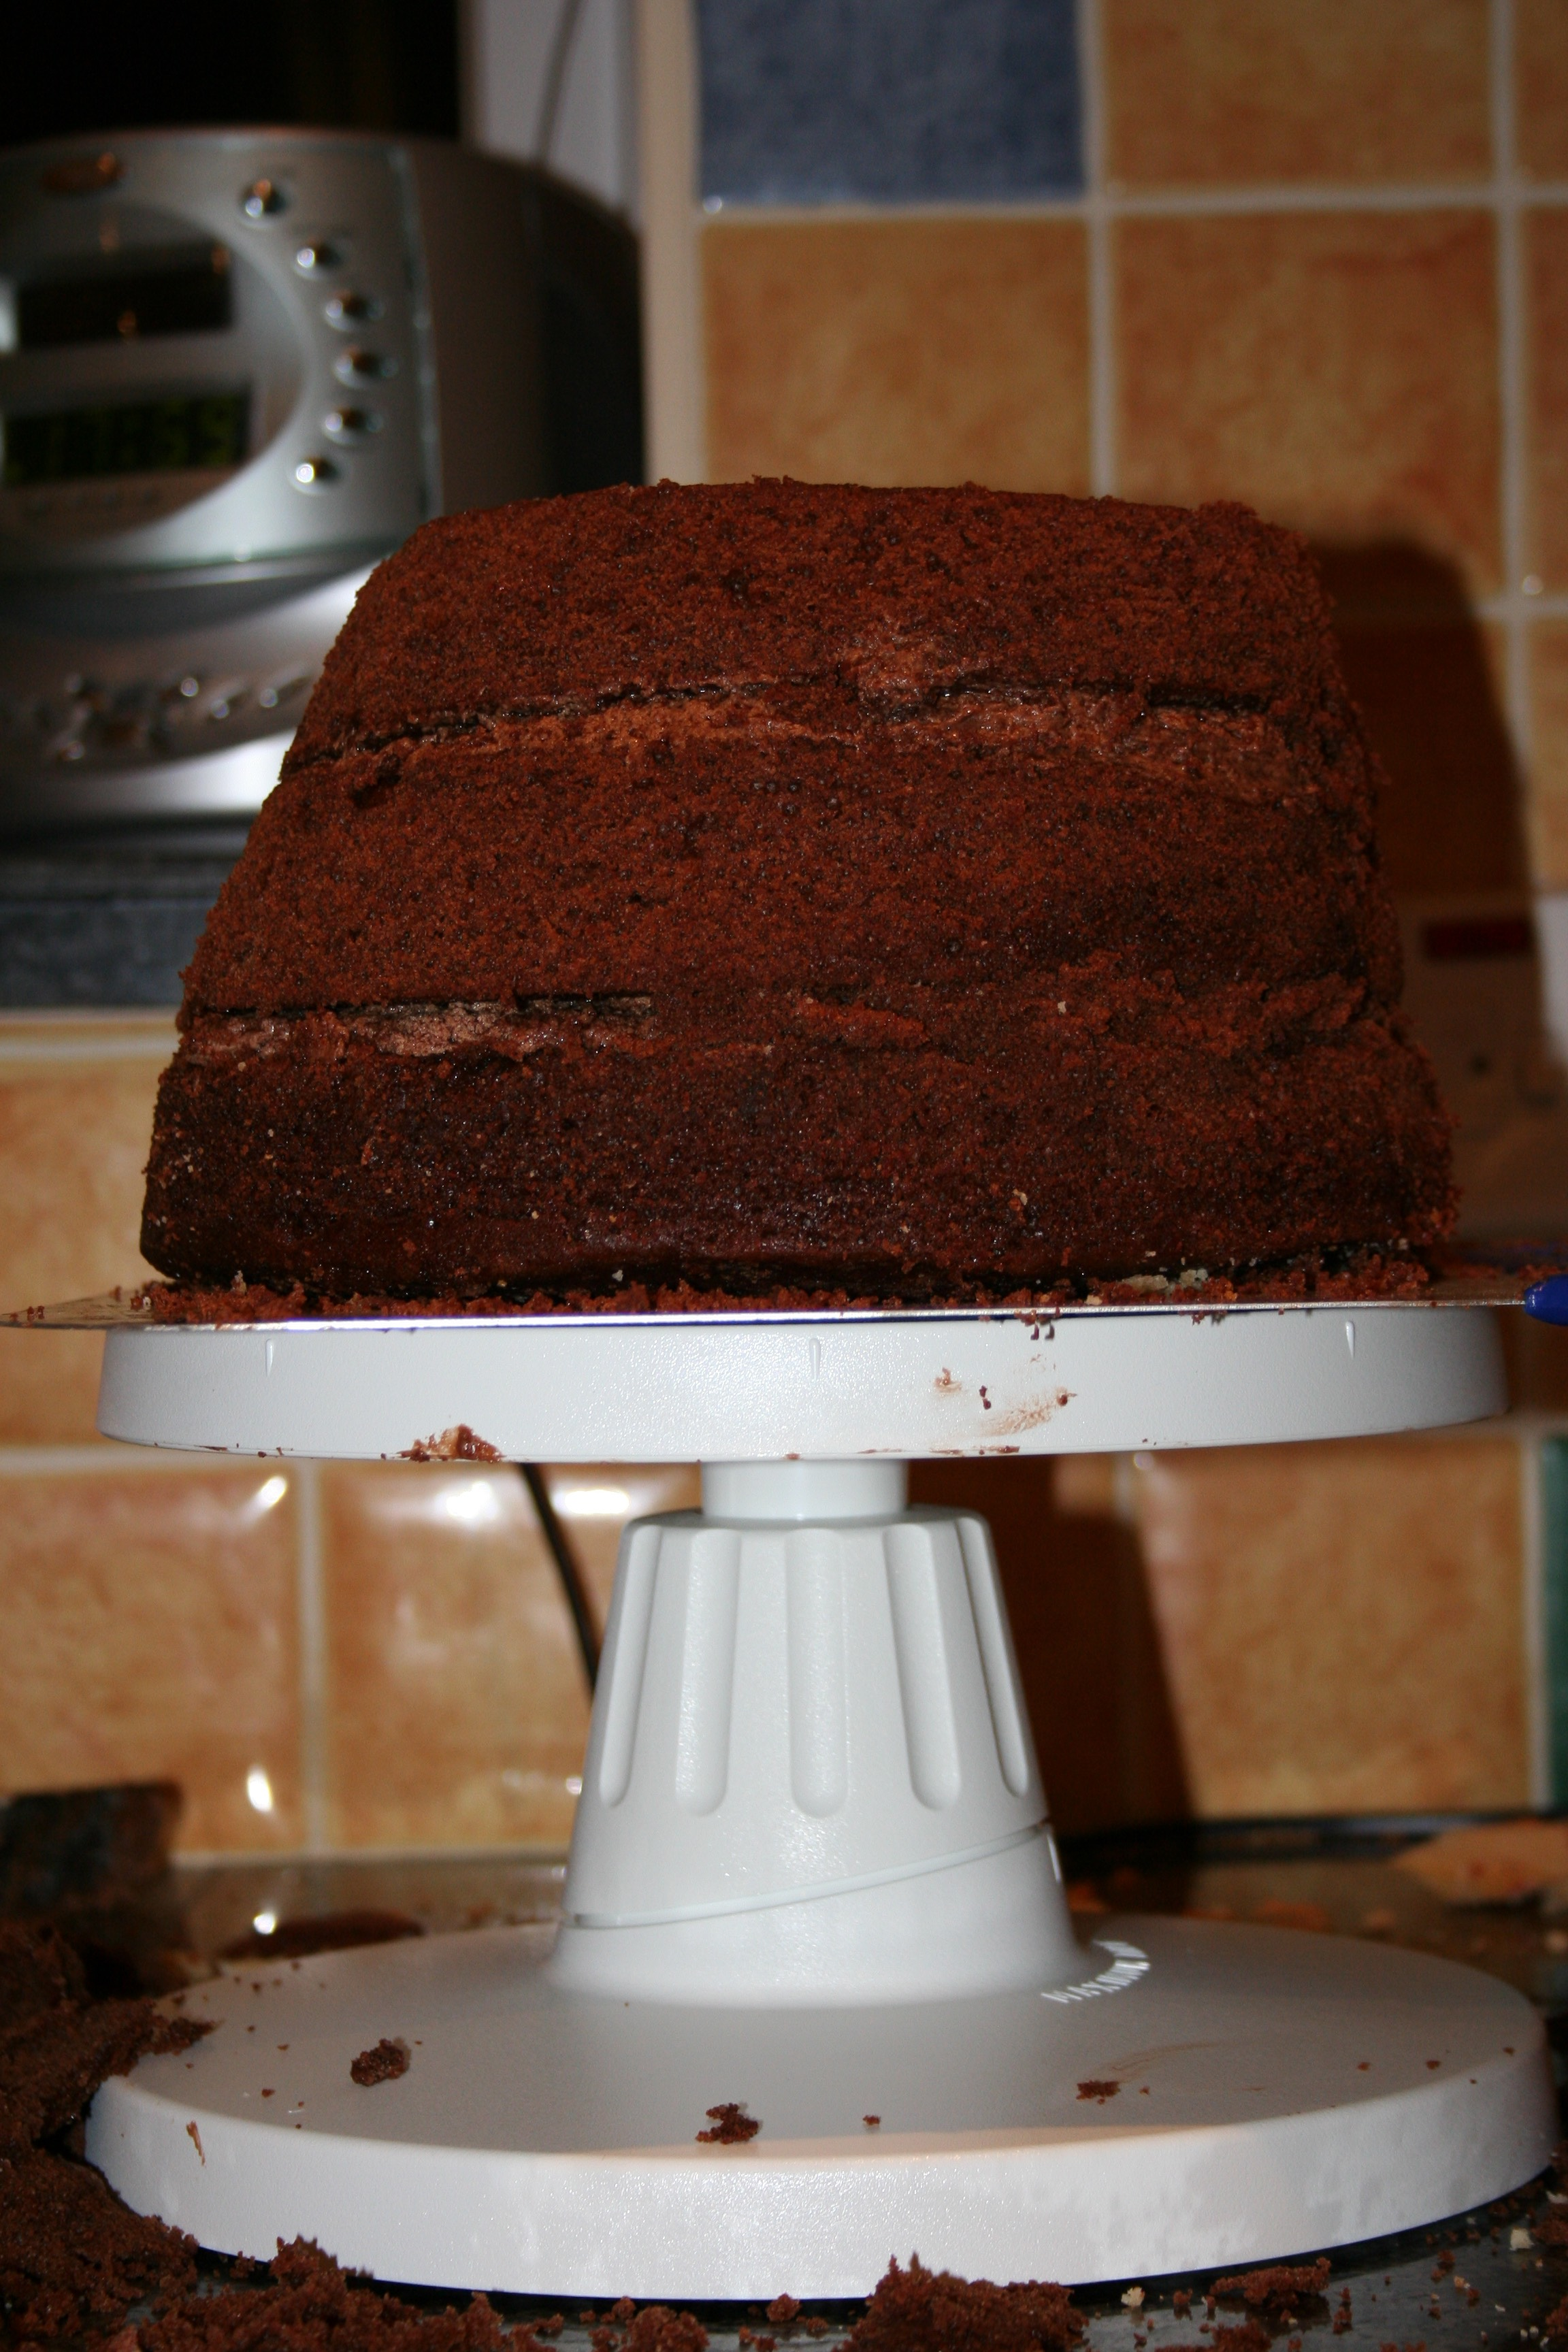 Picture of The Chocolate Cake Part